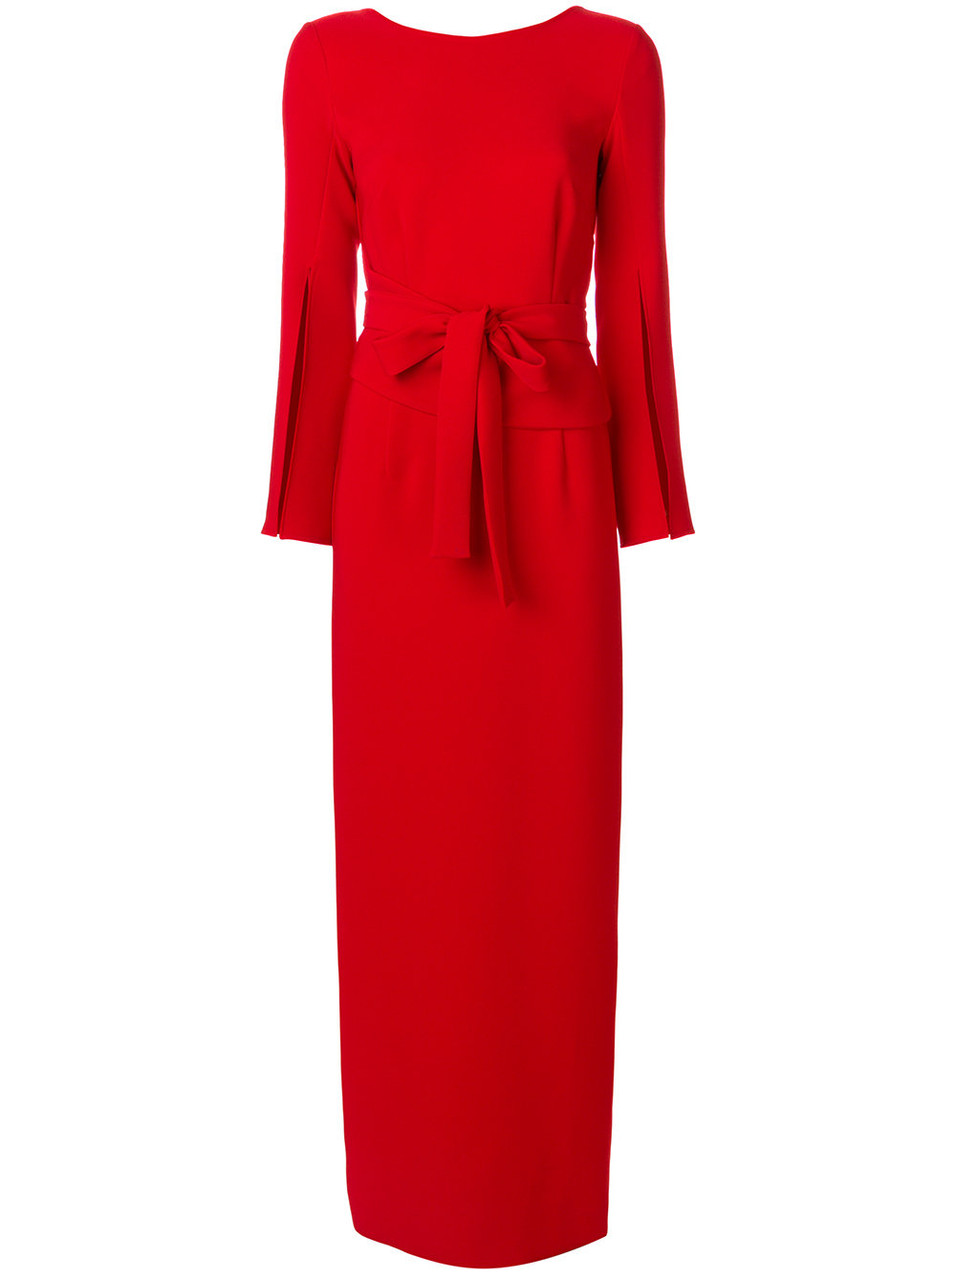 P.A.R.O.S.H. - long belted dress